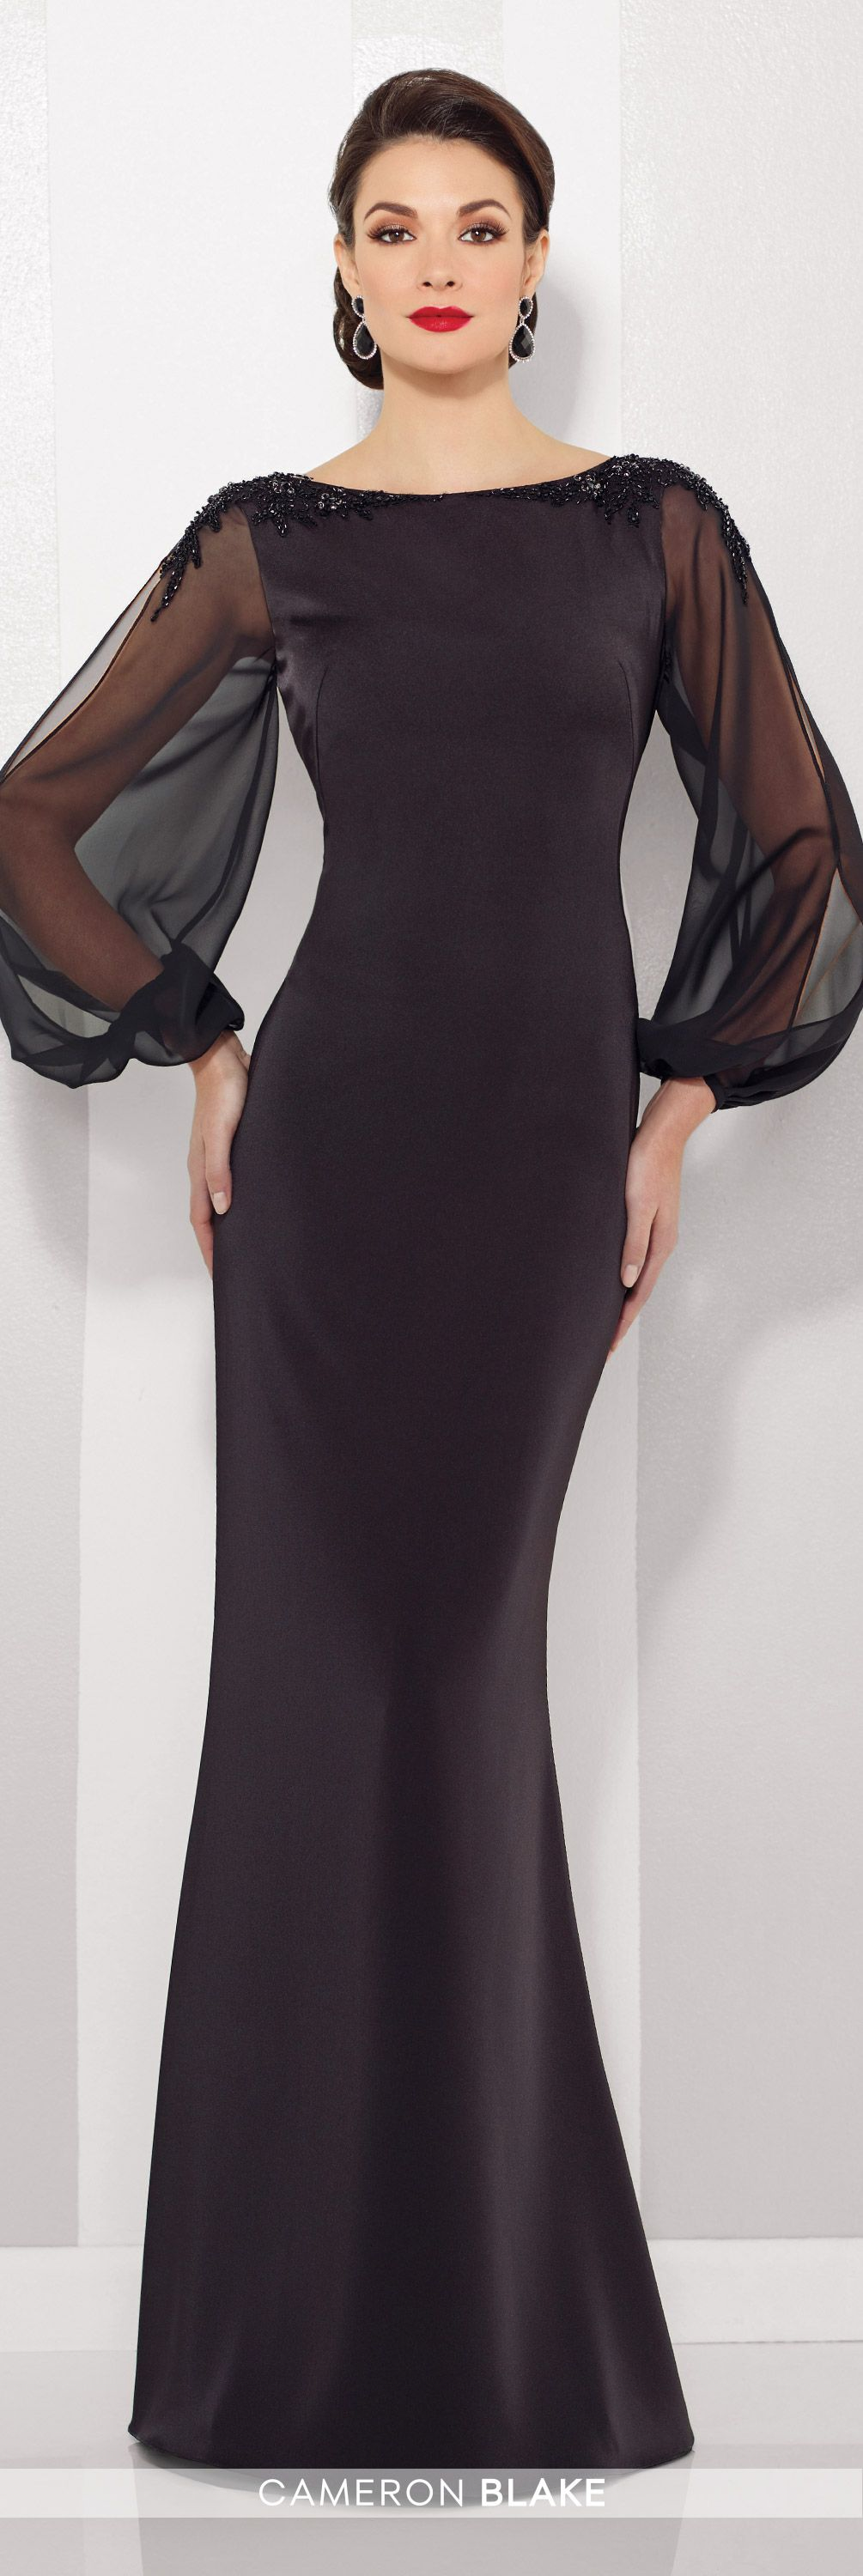 One grim winter evening dress